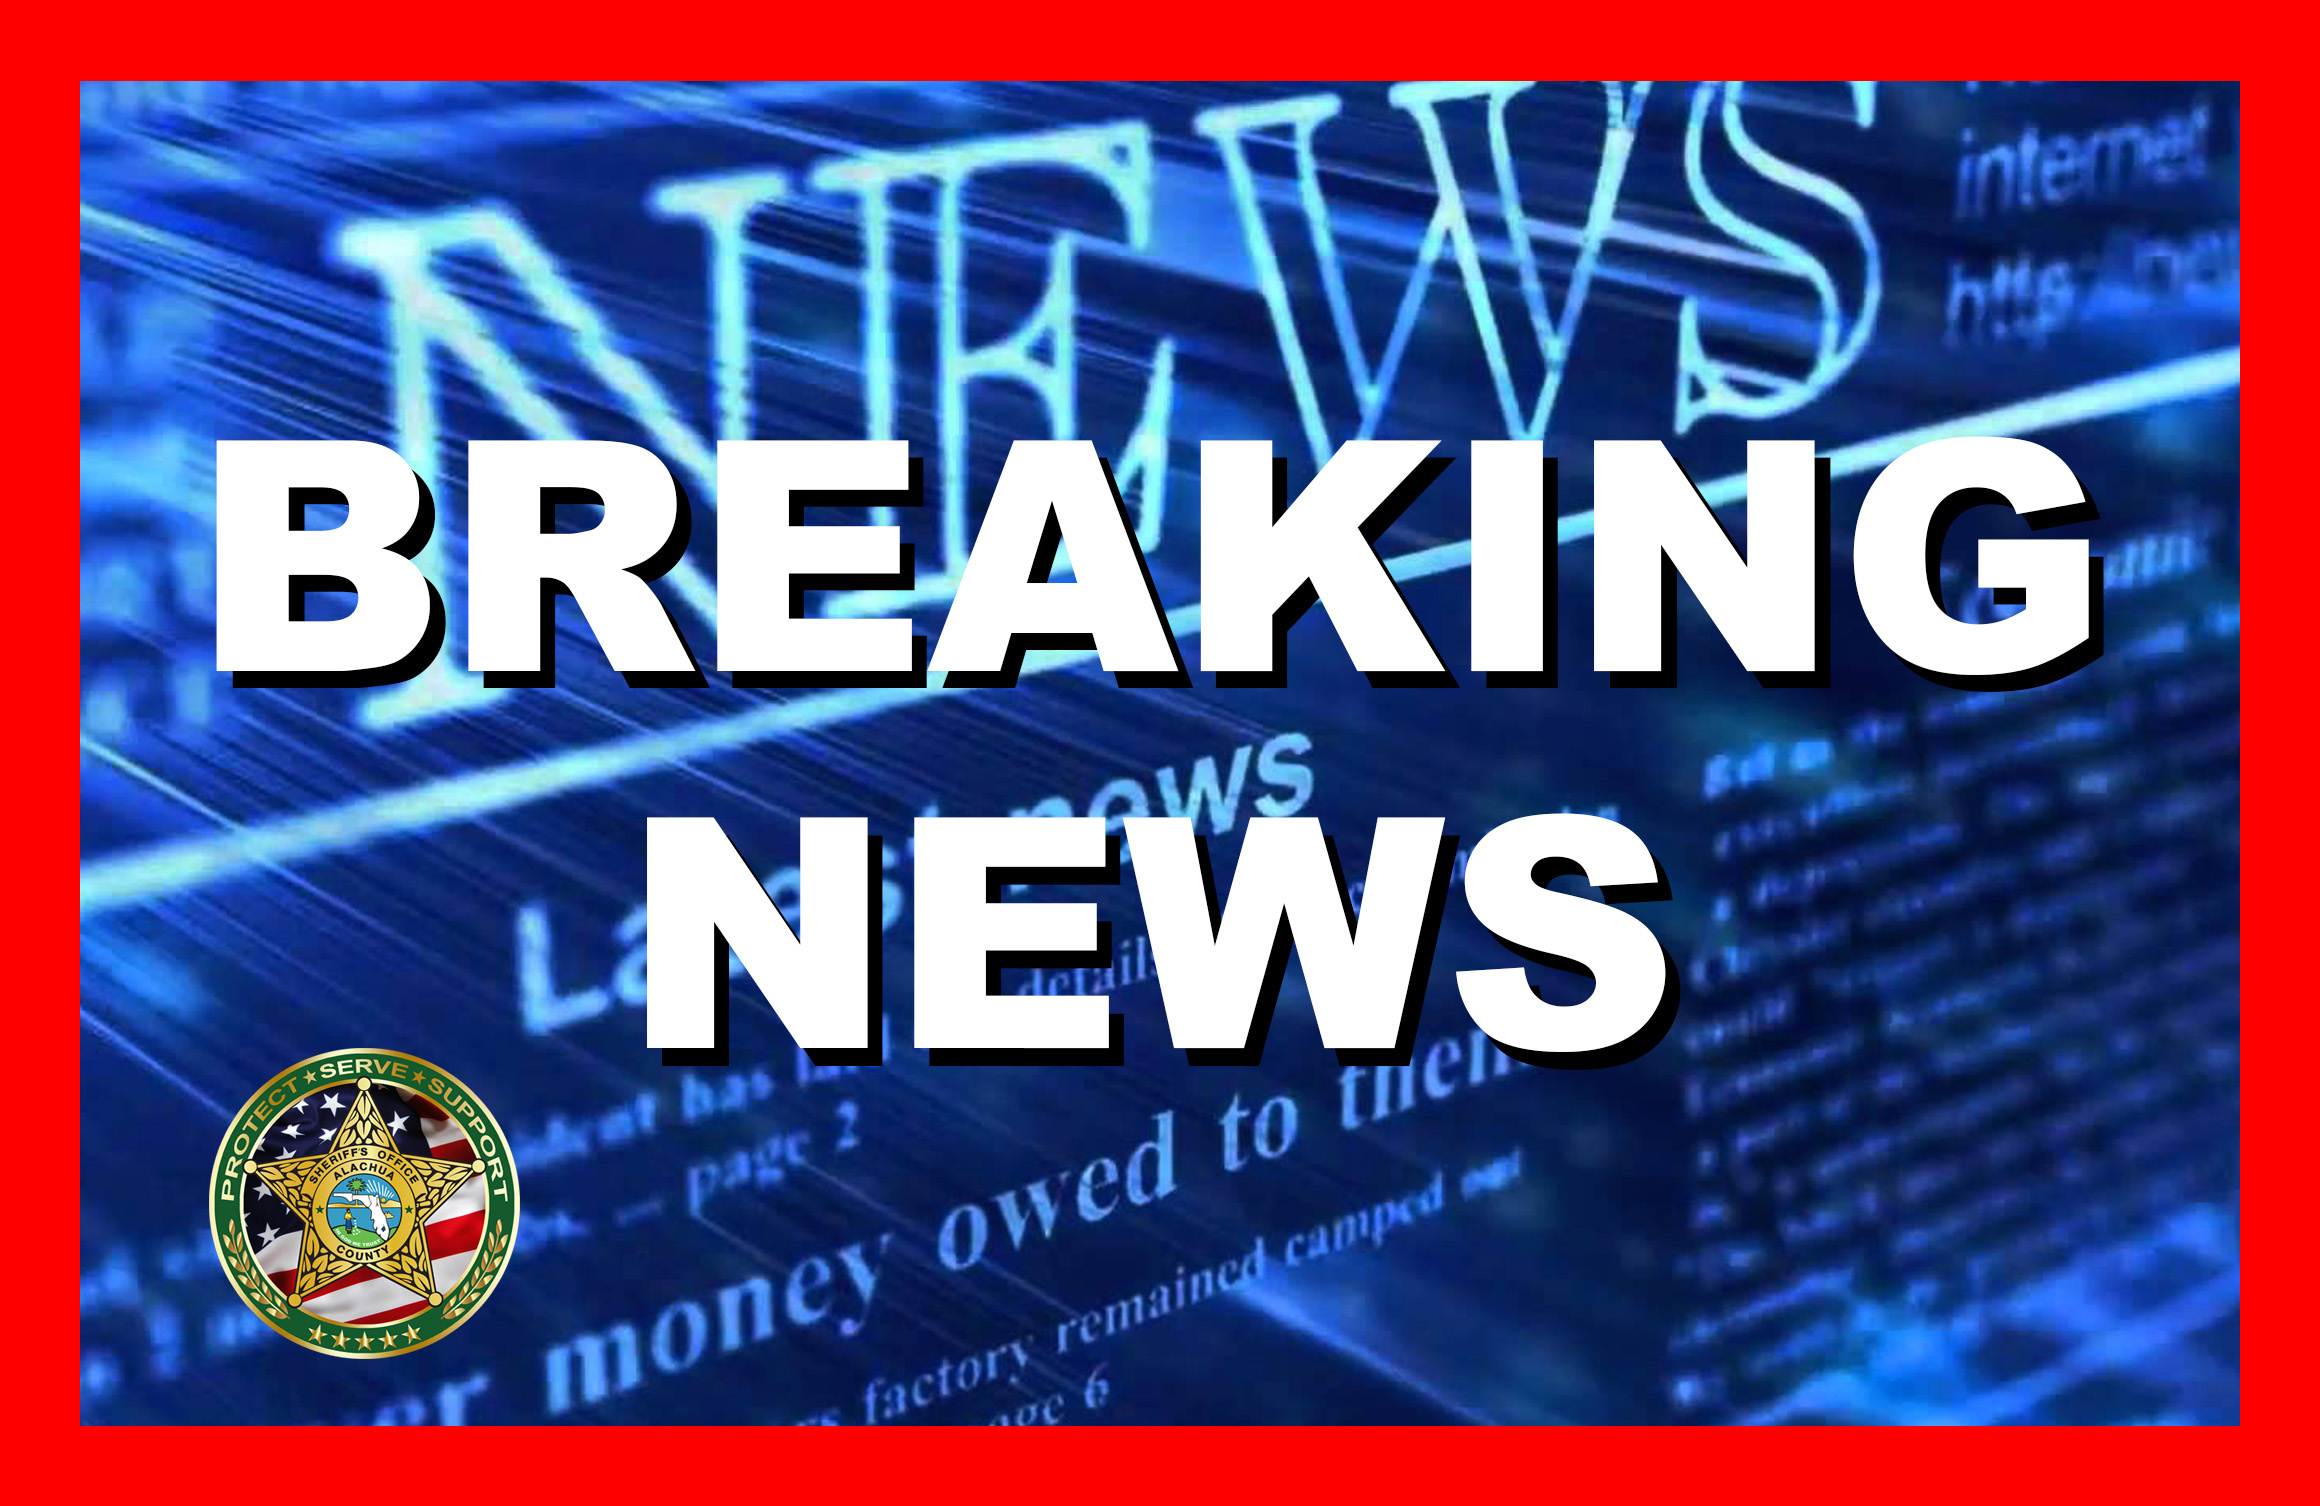 Breaking News from the Alachua County Sheriff's Office